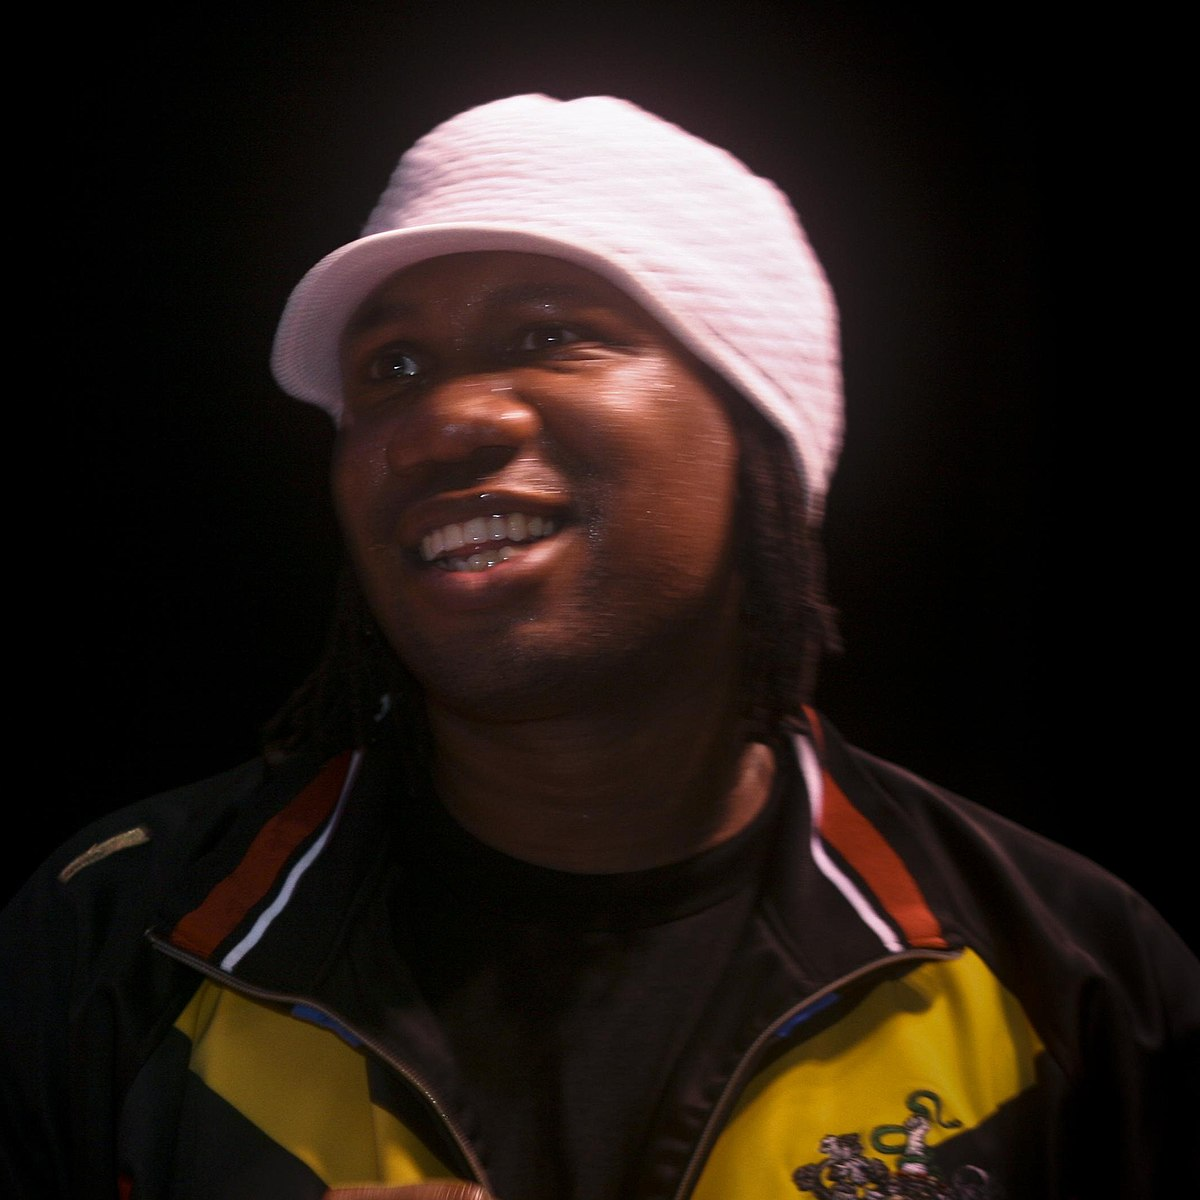 Scott La Rock KRS One Memory Of A Man And His Music